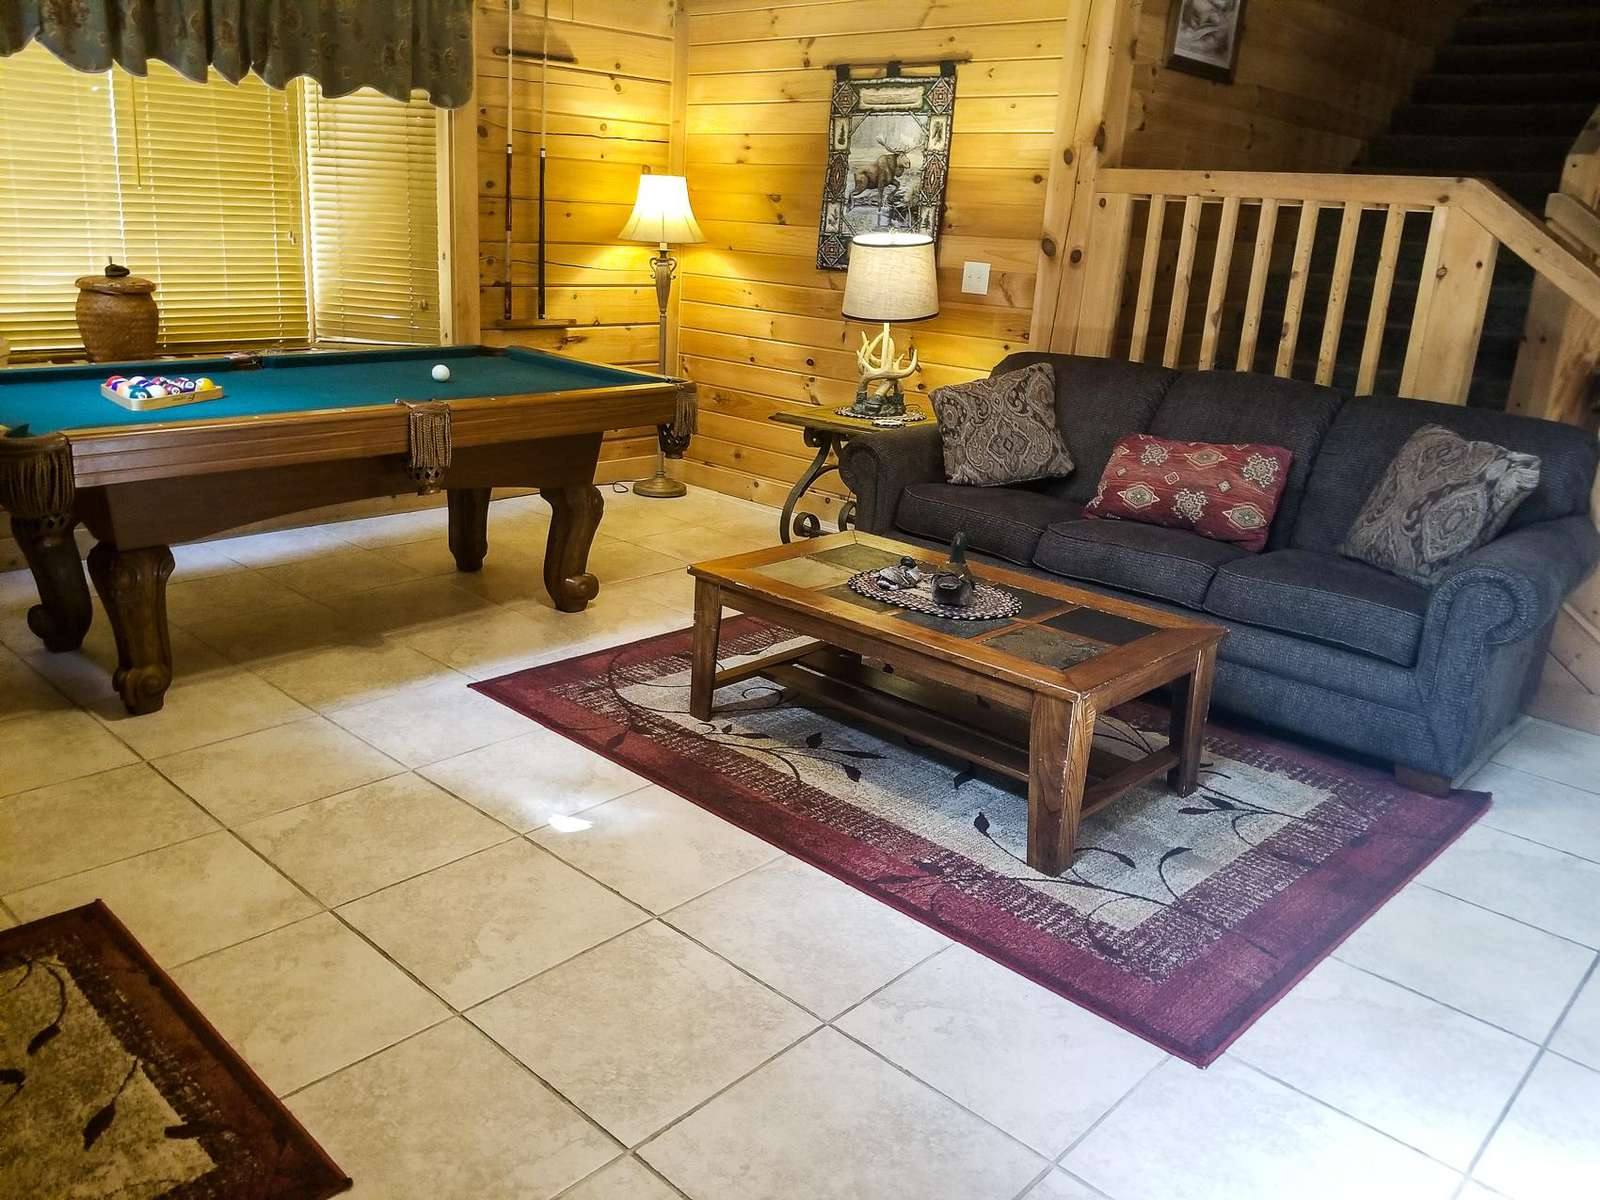 Pool Table In Living Area